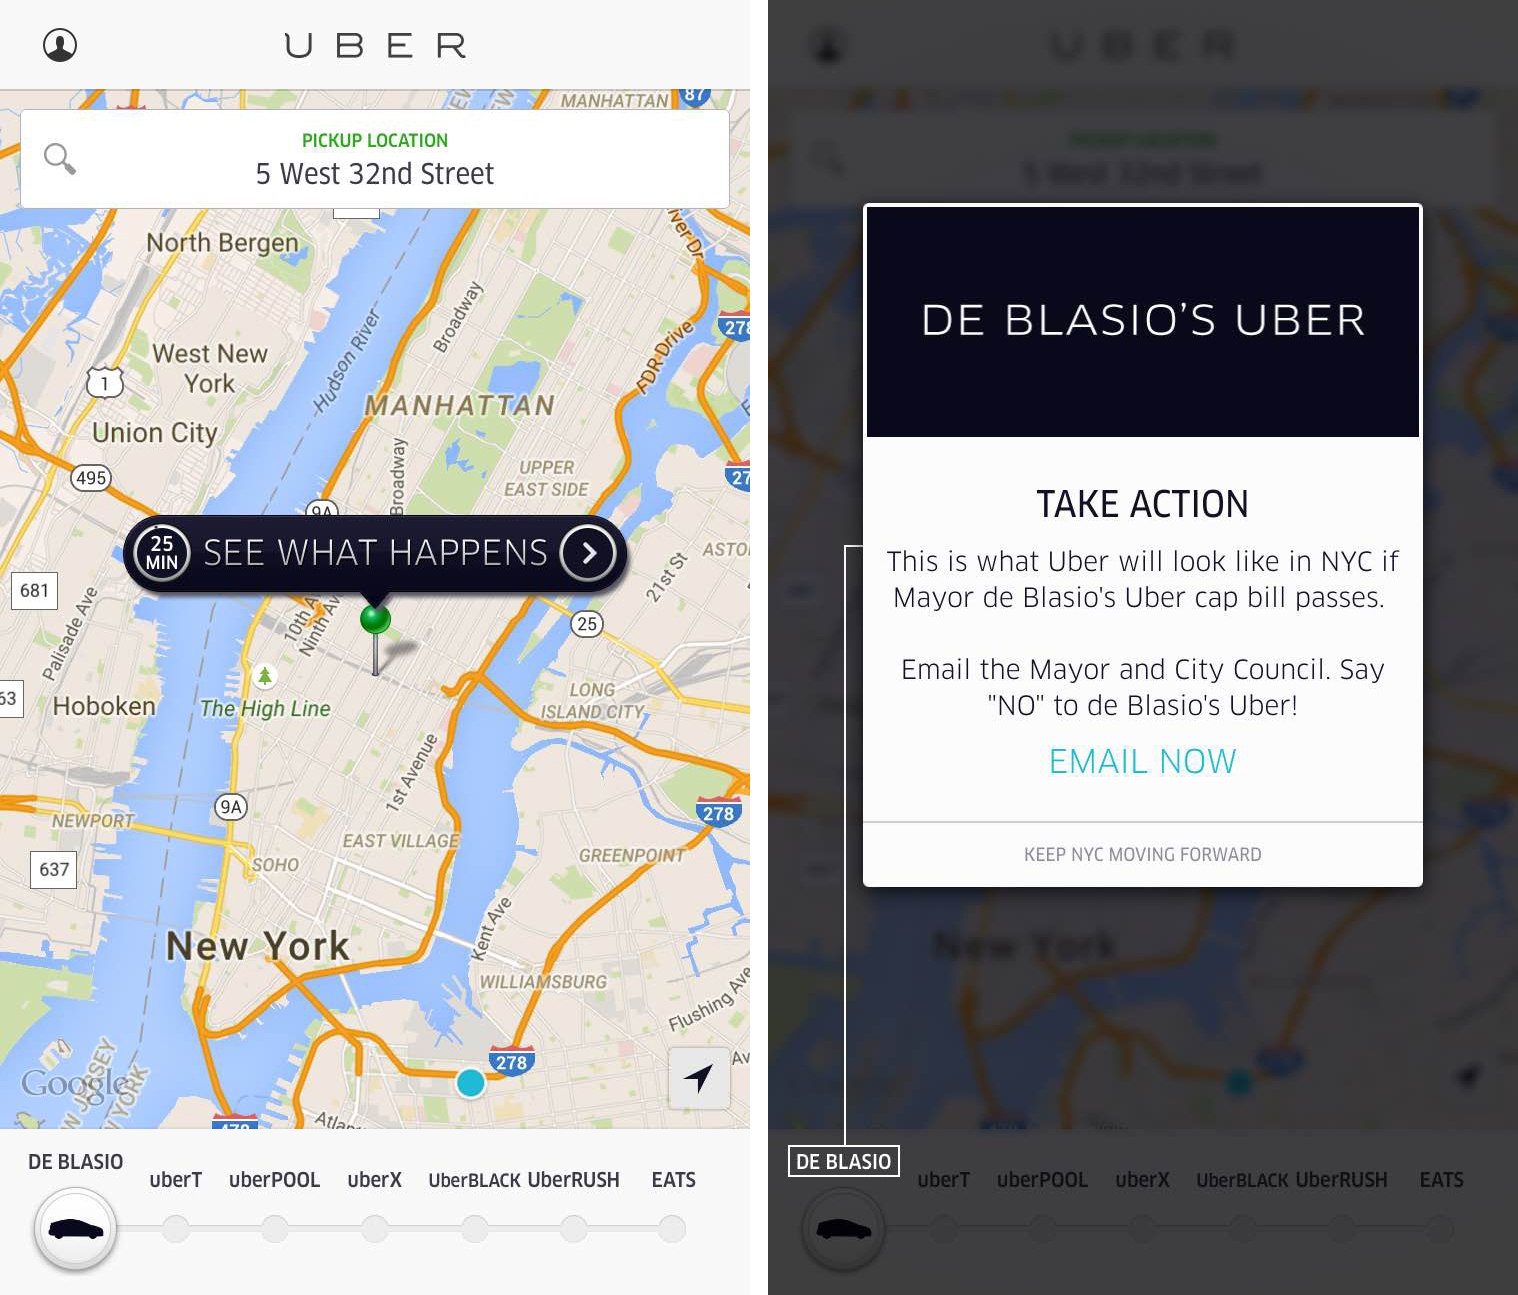 Uber's campaign against Mayor Bill de Blasio has spread to its ride-hailing app.